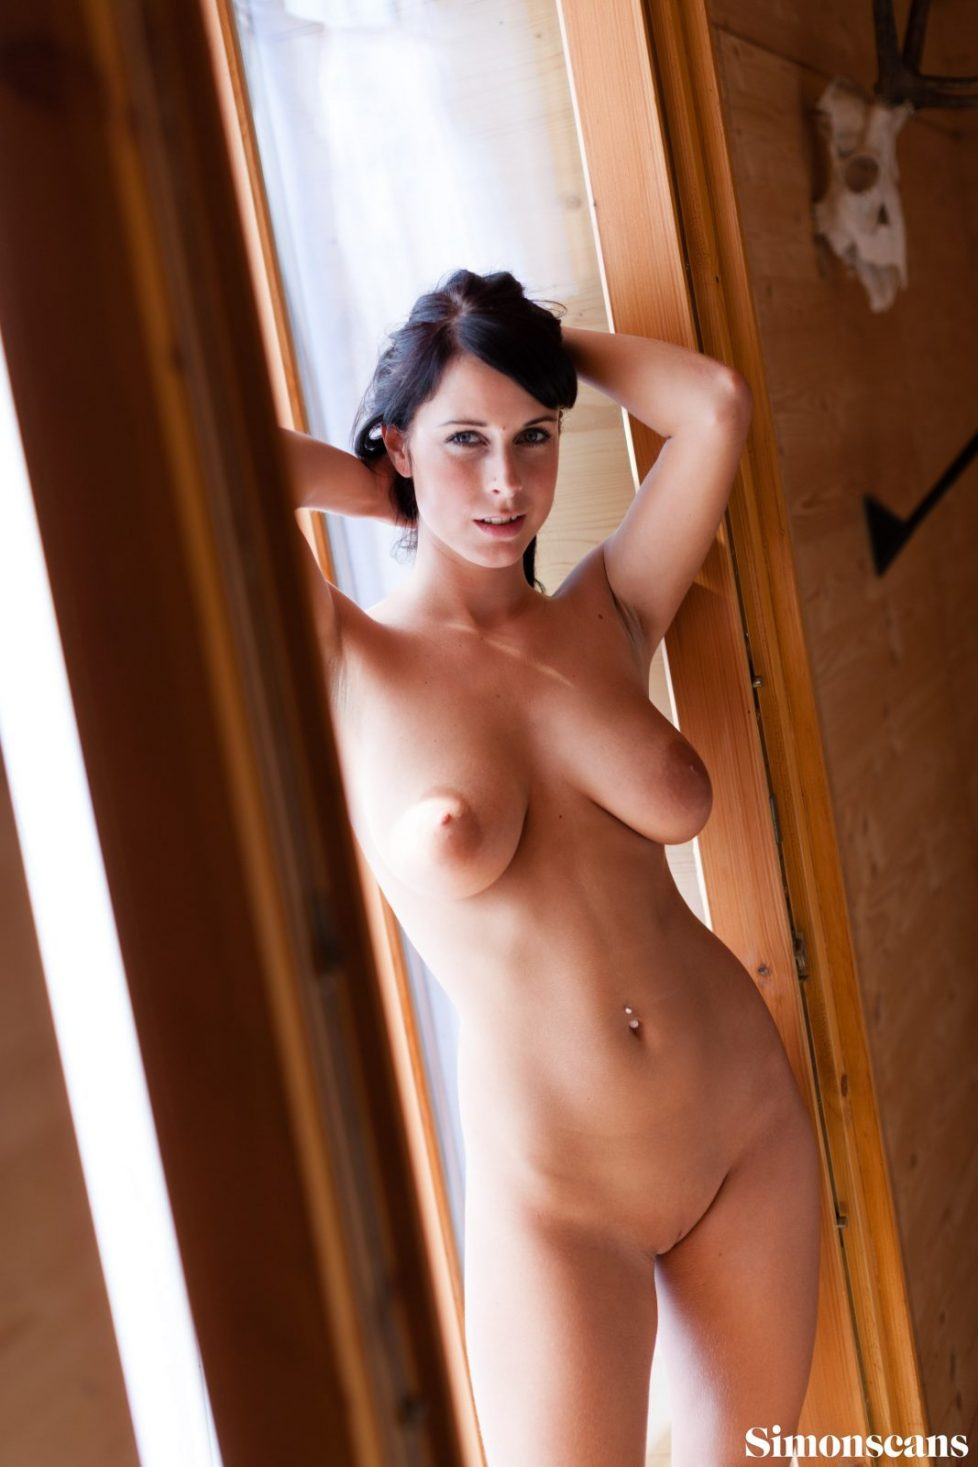 Roxana_in_a_doorway_016